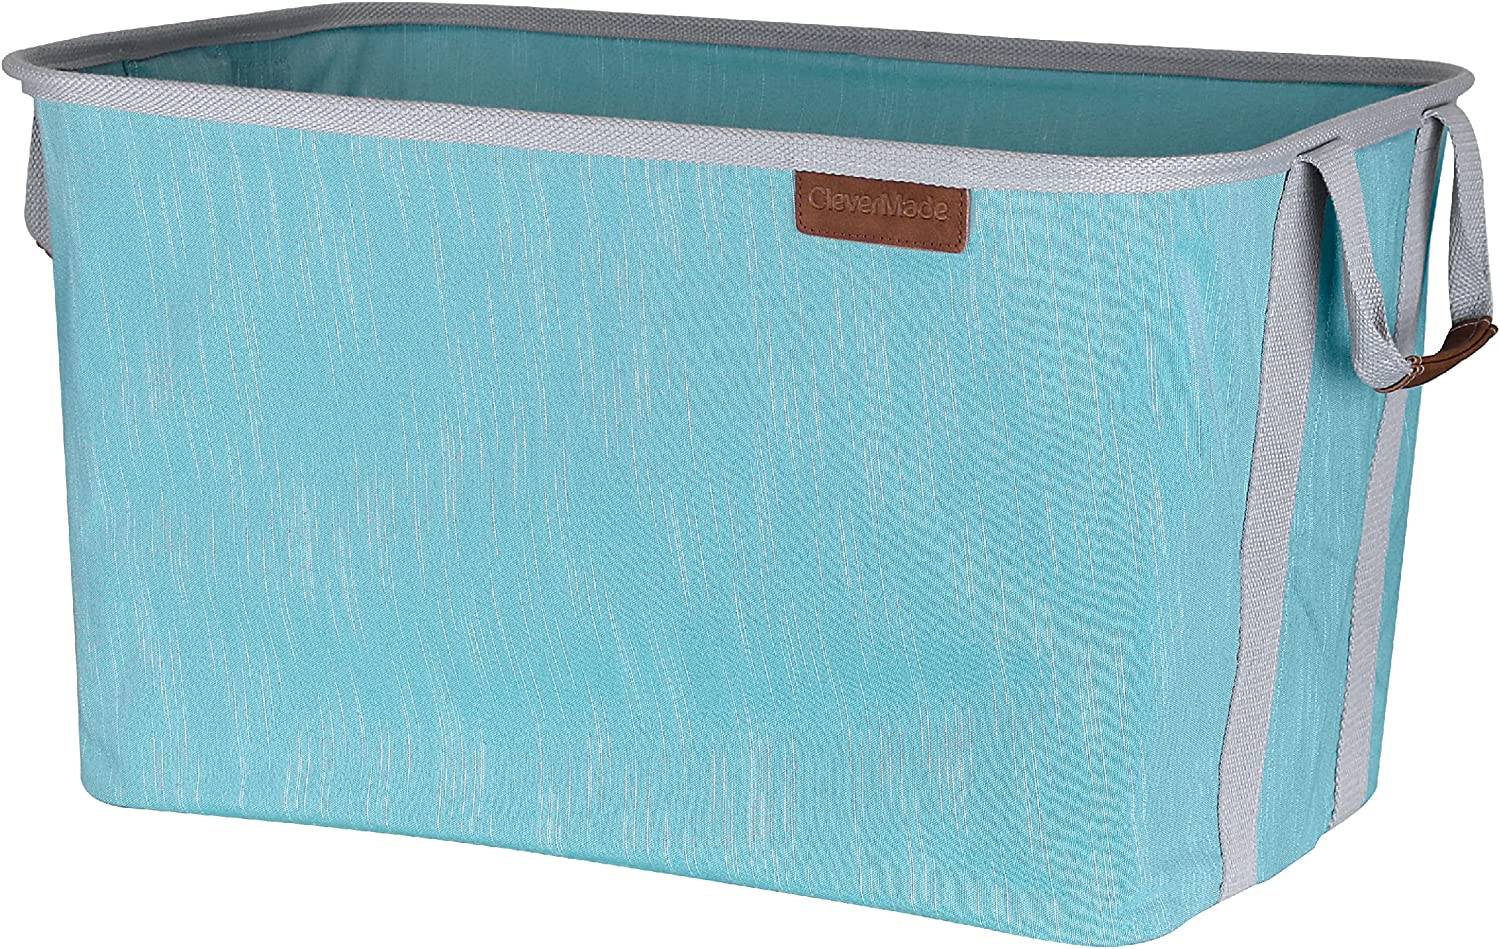 CleverMade Collapsible Popular brand Fabric Laundry Basket St Durable Pop Up - Super popular specialty store